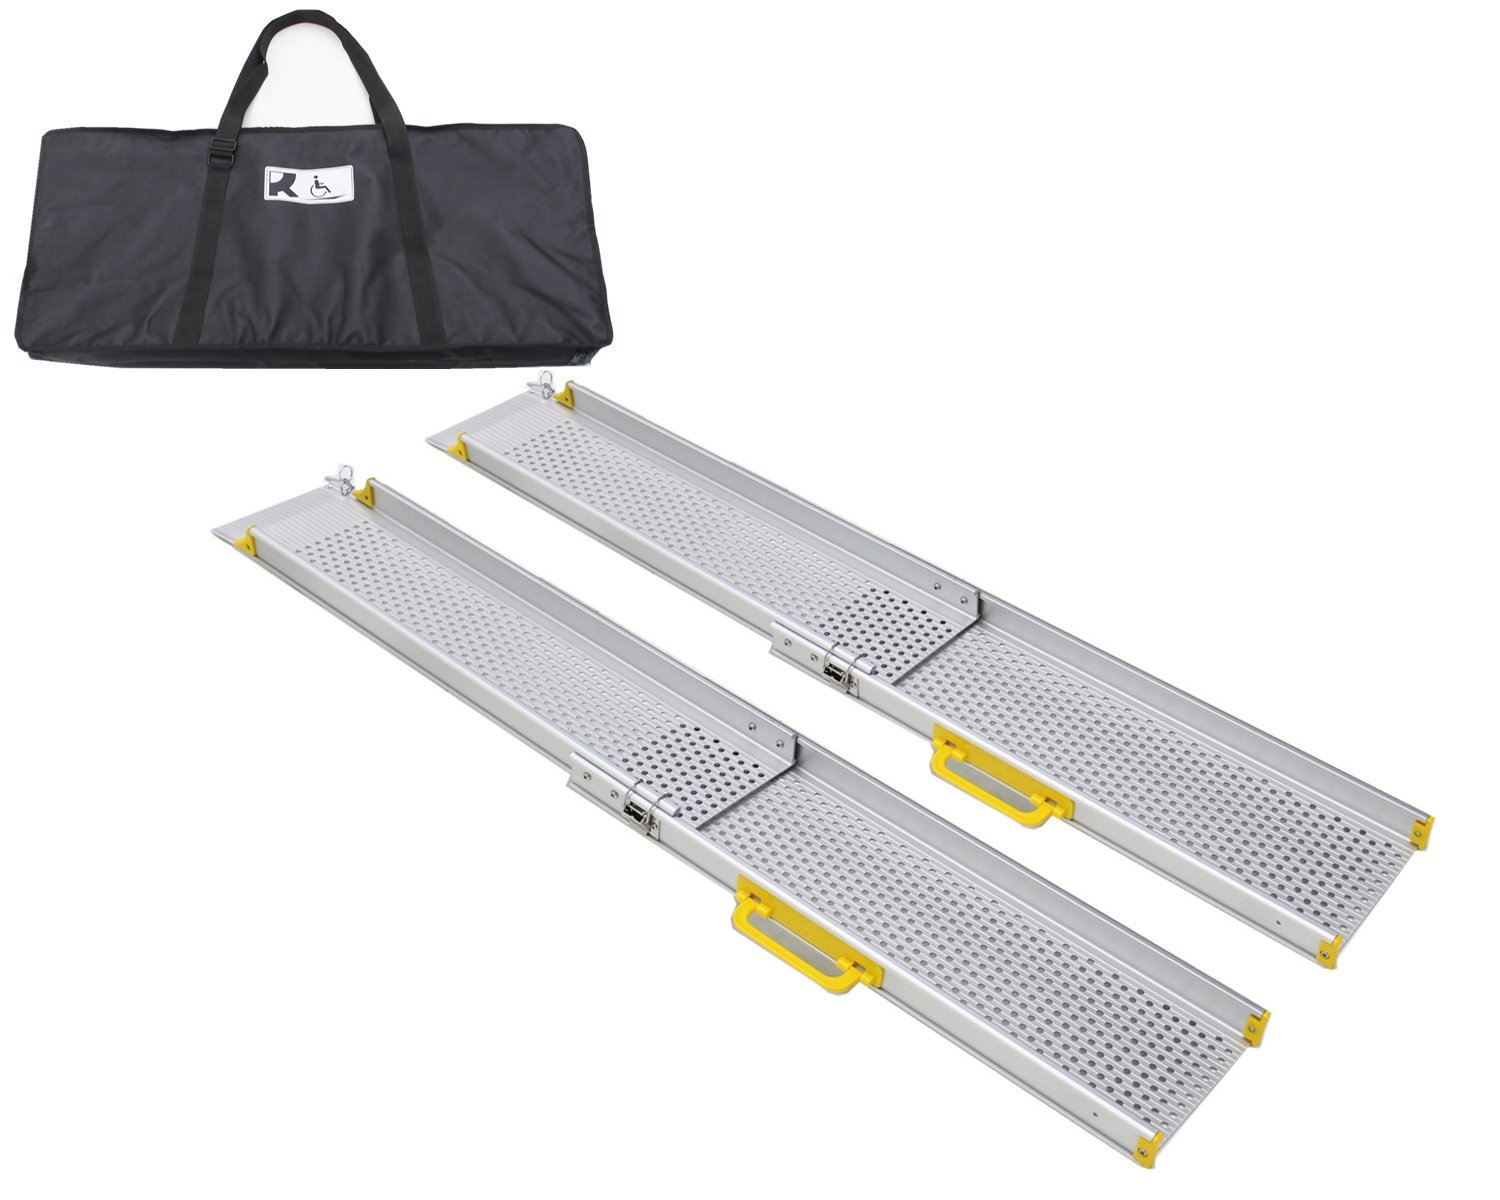 Ruedamann 5' Aluminum Adjustable Portable Telescoping Track Ramps Lightweight Wheelchair Ramp With Carrying Bag, Sold In Pair, 7.2'' Inside Width 5ft (MR10719-5)